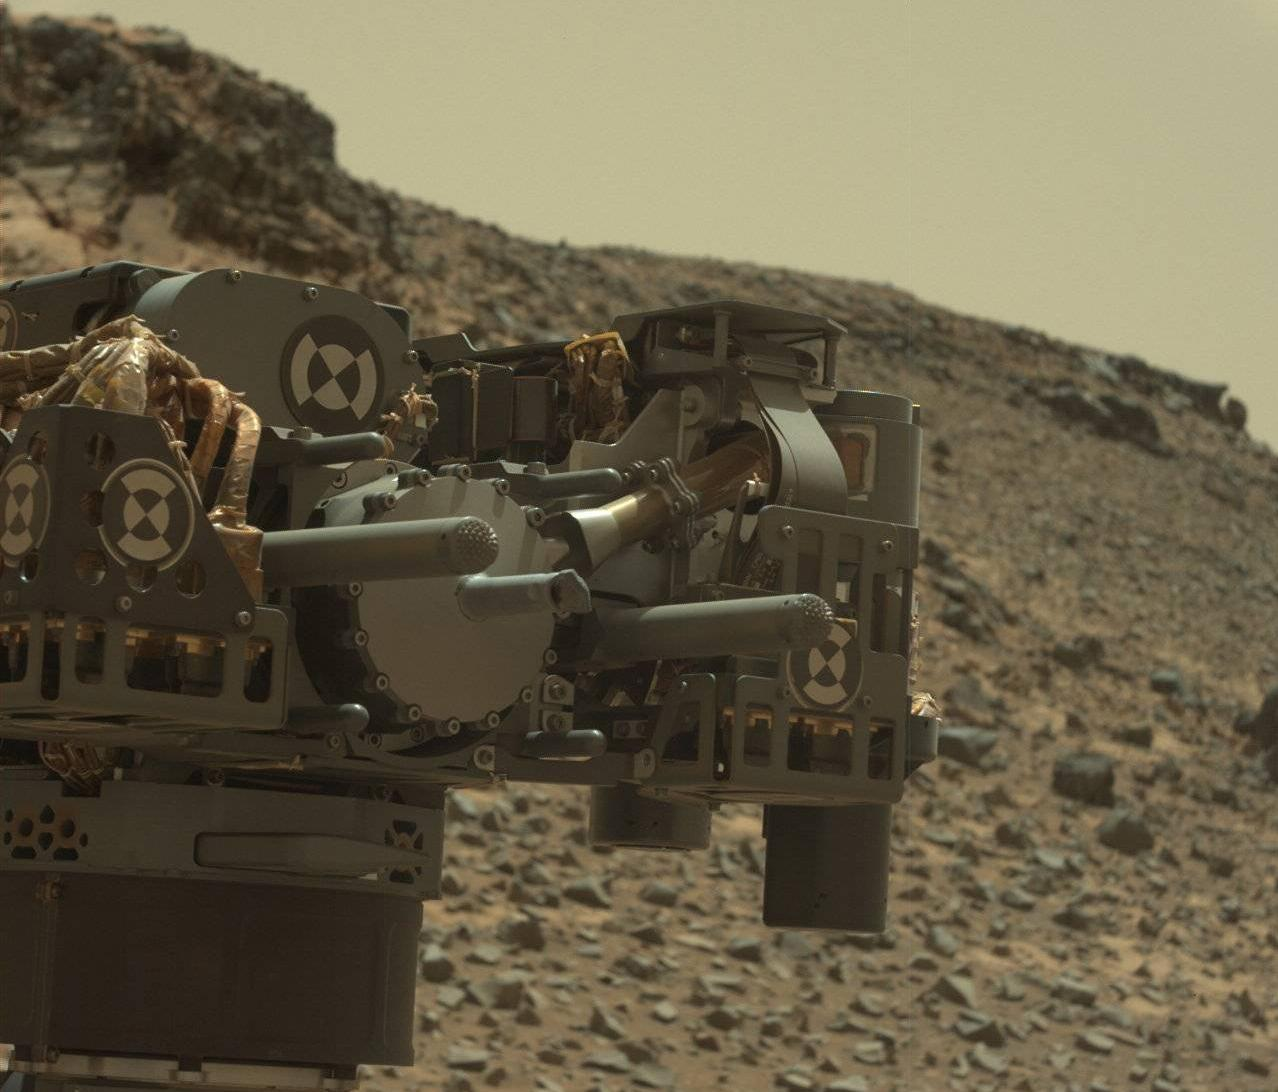 NASA's Curiosity Rover on Mars Sidelined By 'Short Circuit' Glitch